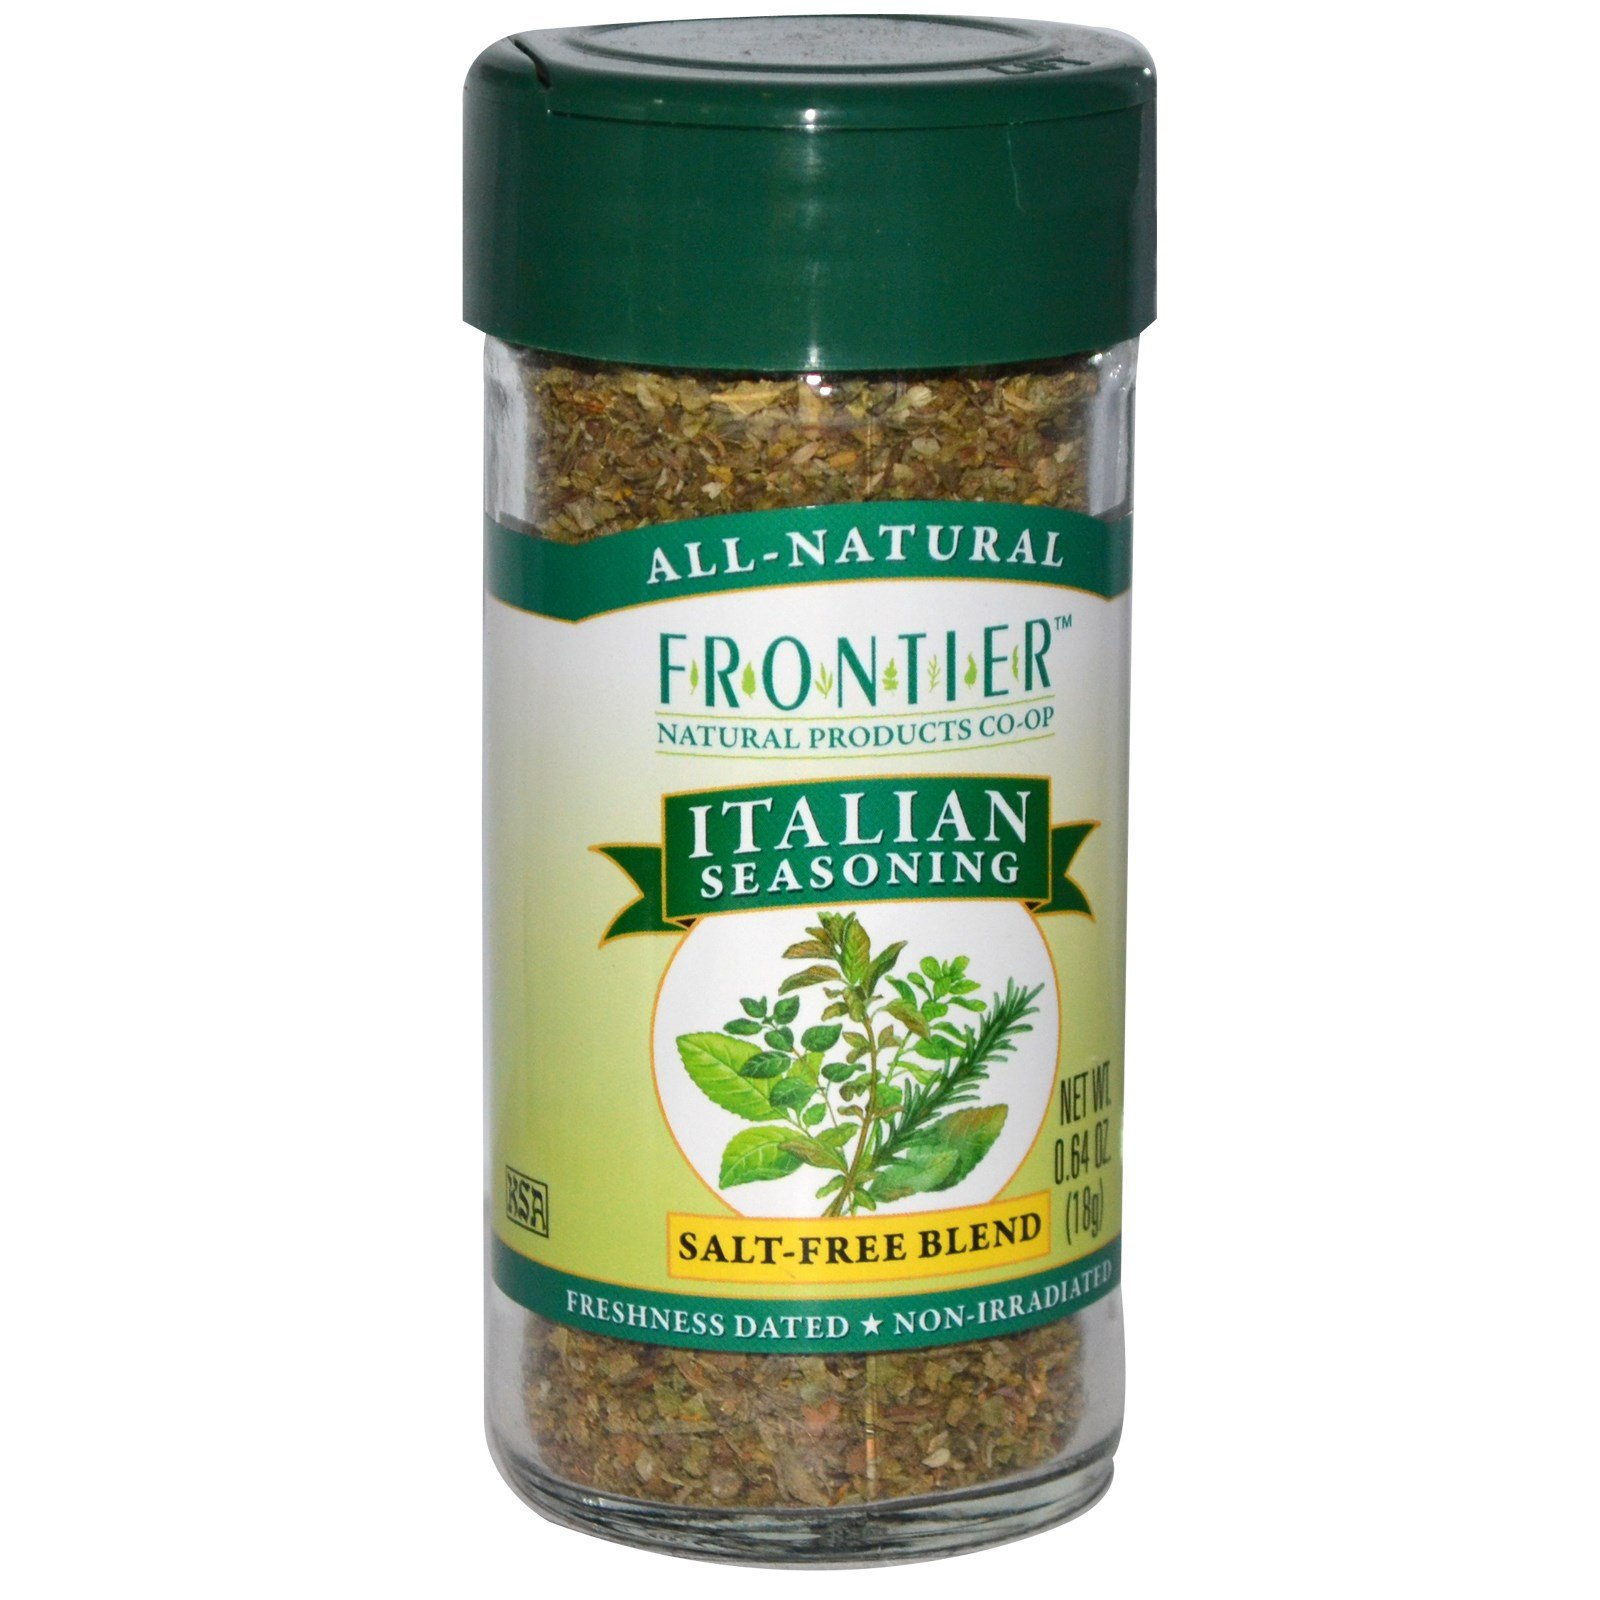 Frontier Natural Products, Italian Seasoning, Salt-Free Blend, 0.64 oz (18 g) - 3PC